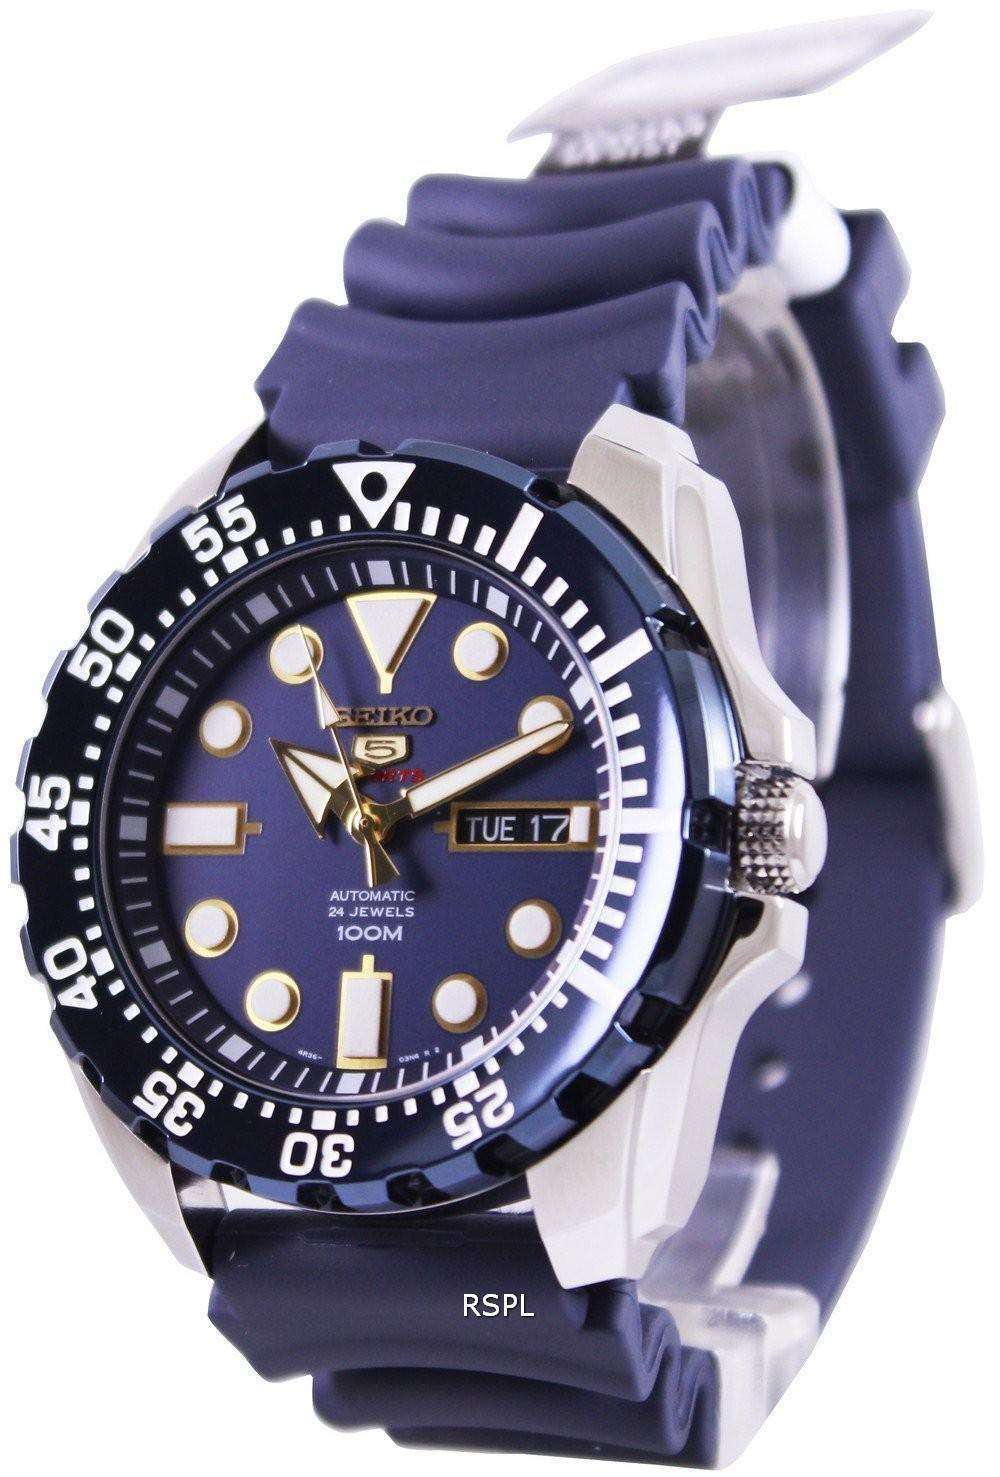 seiko 5 sports automatic 24 jewels srp605k2 mens watch